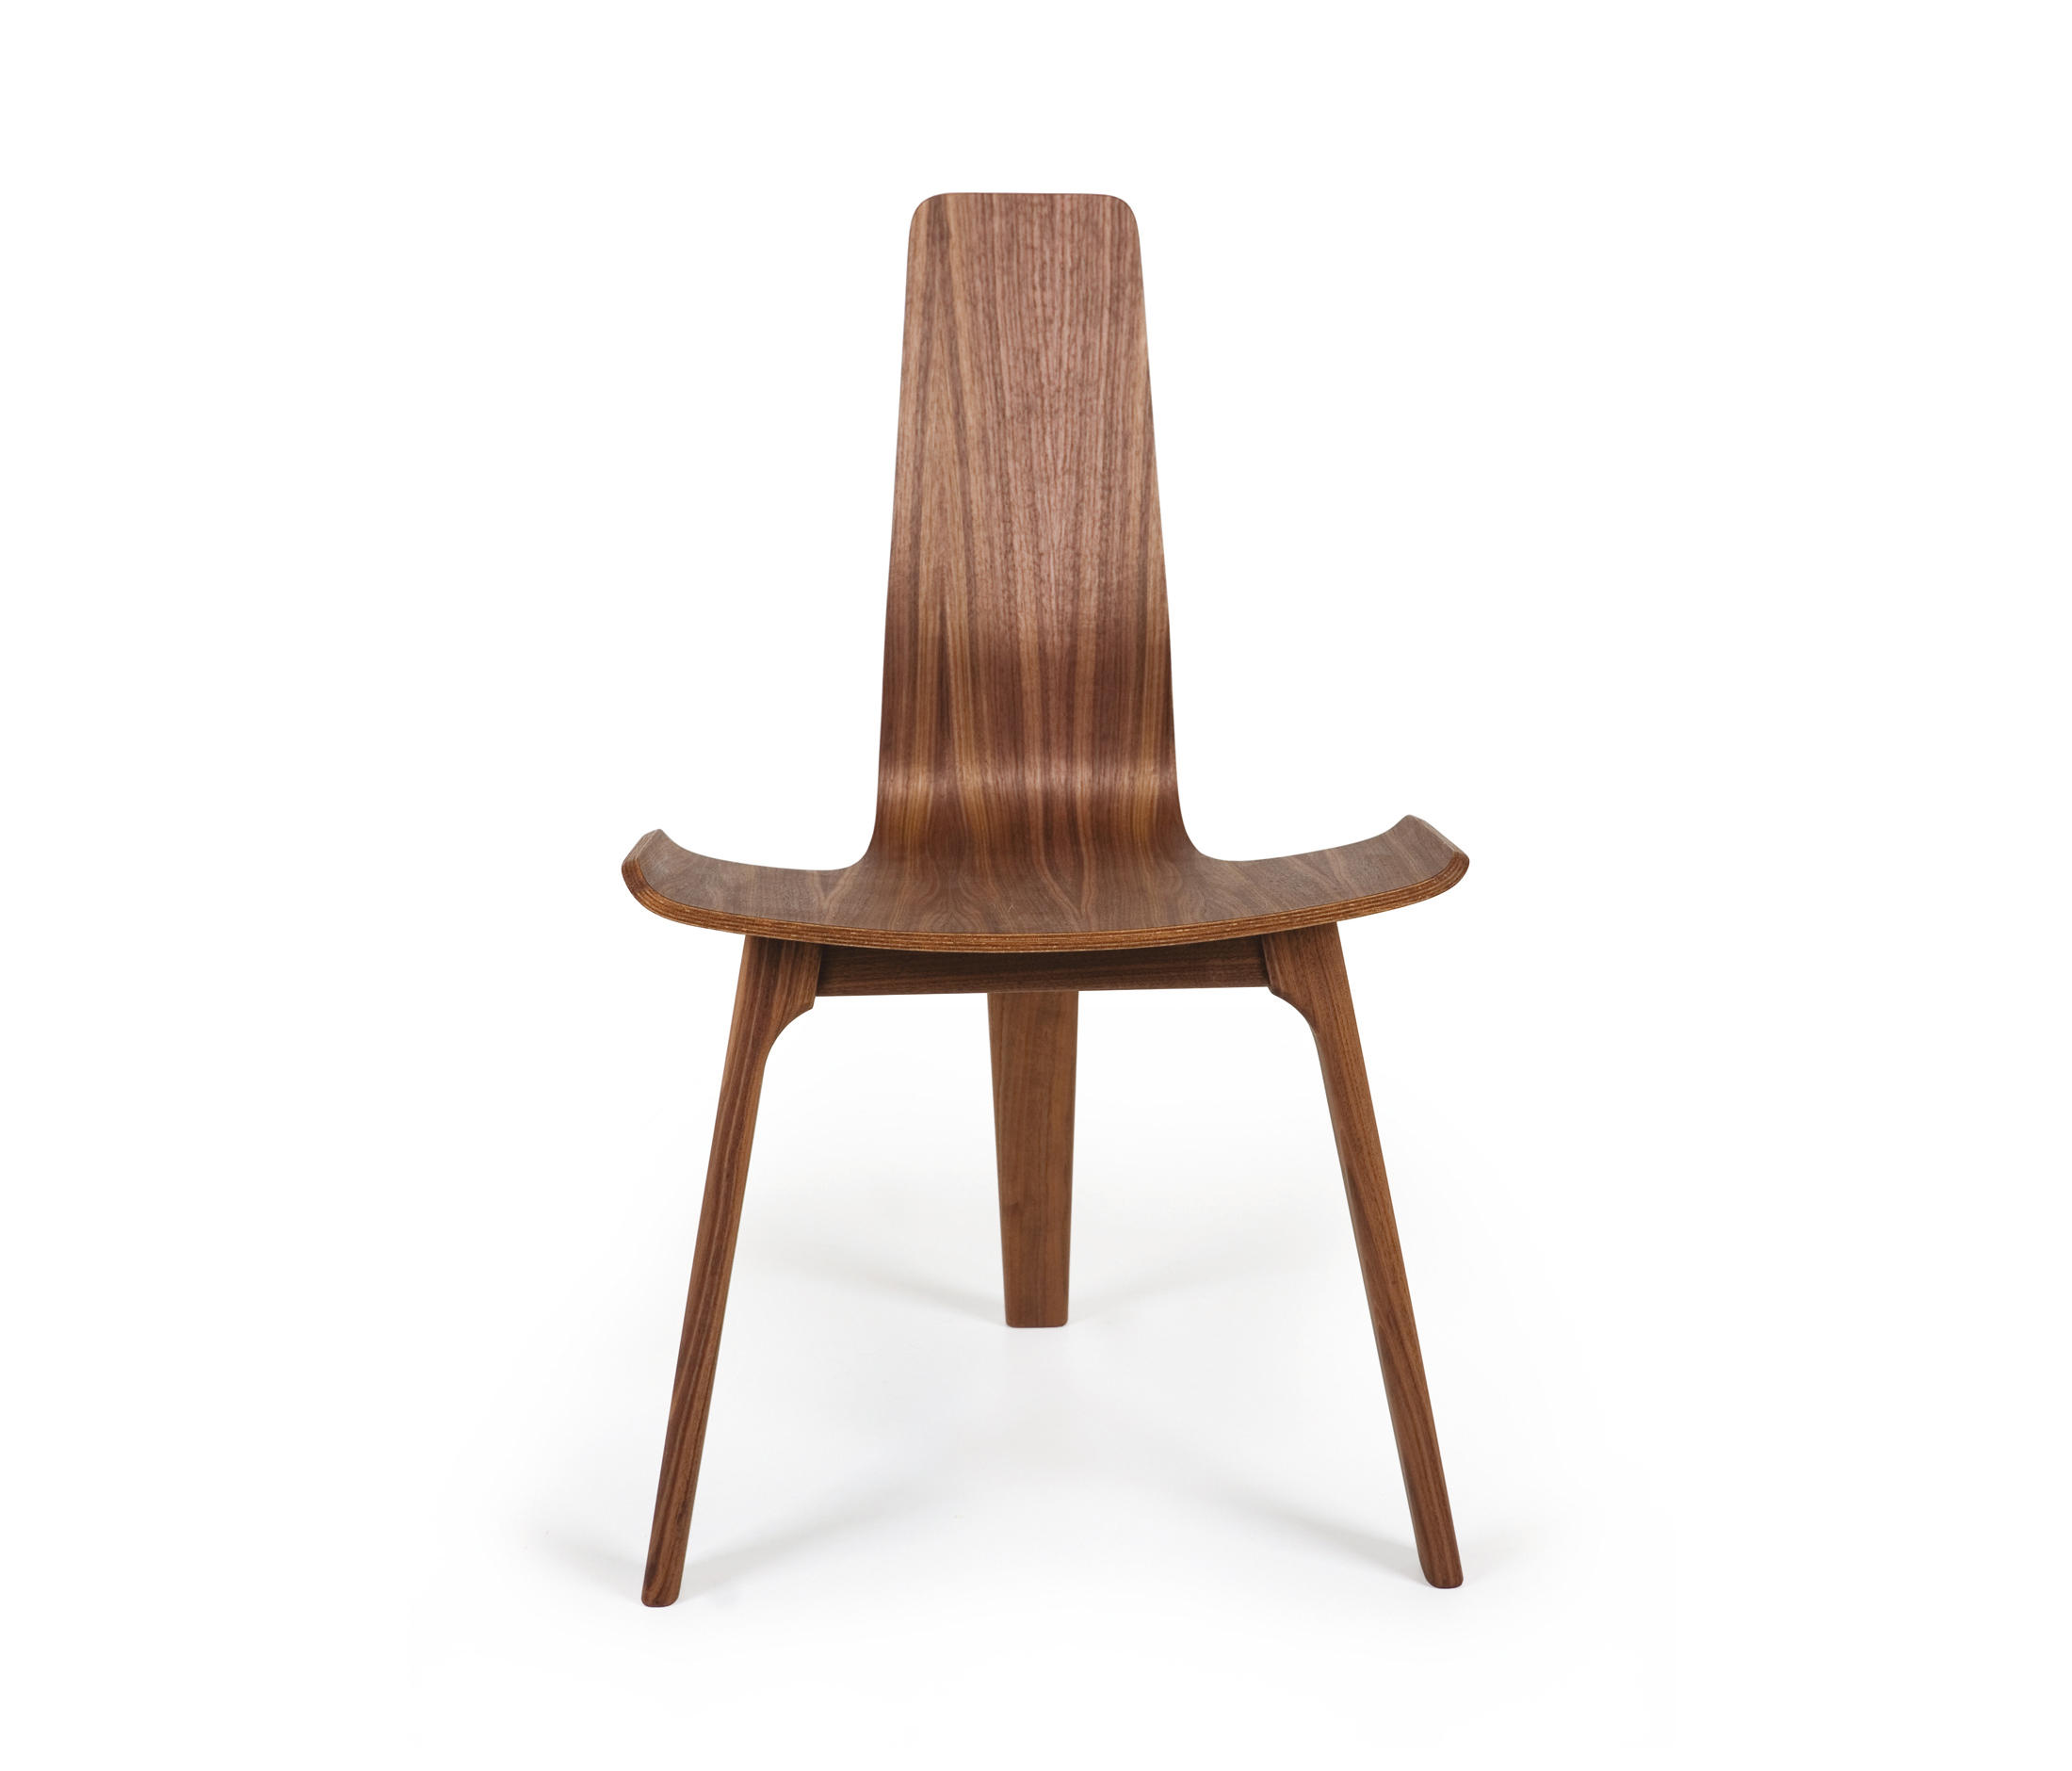 Tapas Dining Chair by Matthew Hilton ...  sc 1 st  Architonic & TAPAS DINING CHAIR - Chairs from Matthew Hilton | Architonic